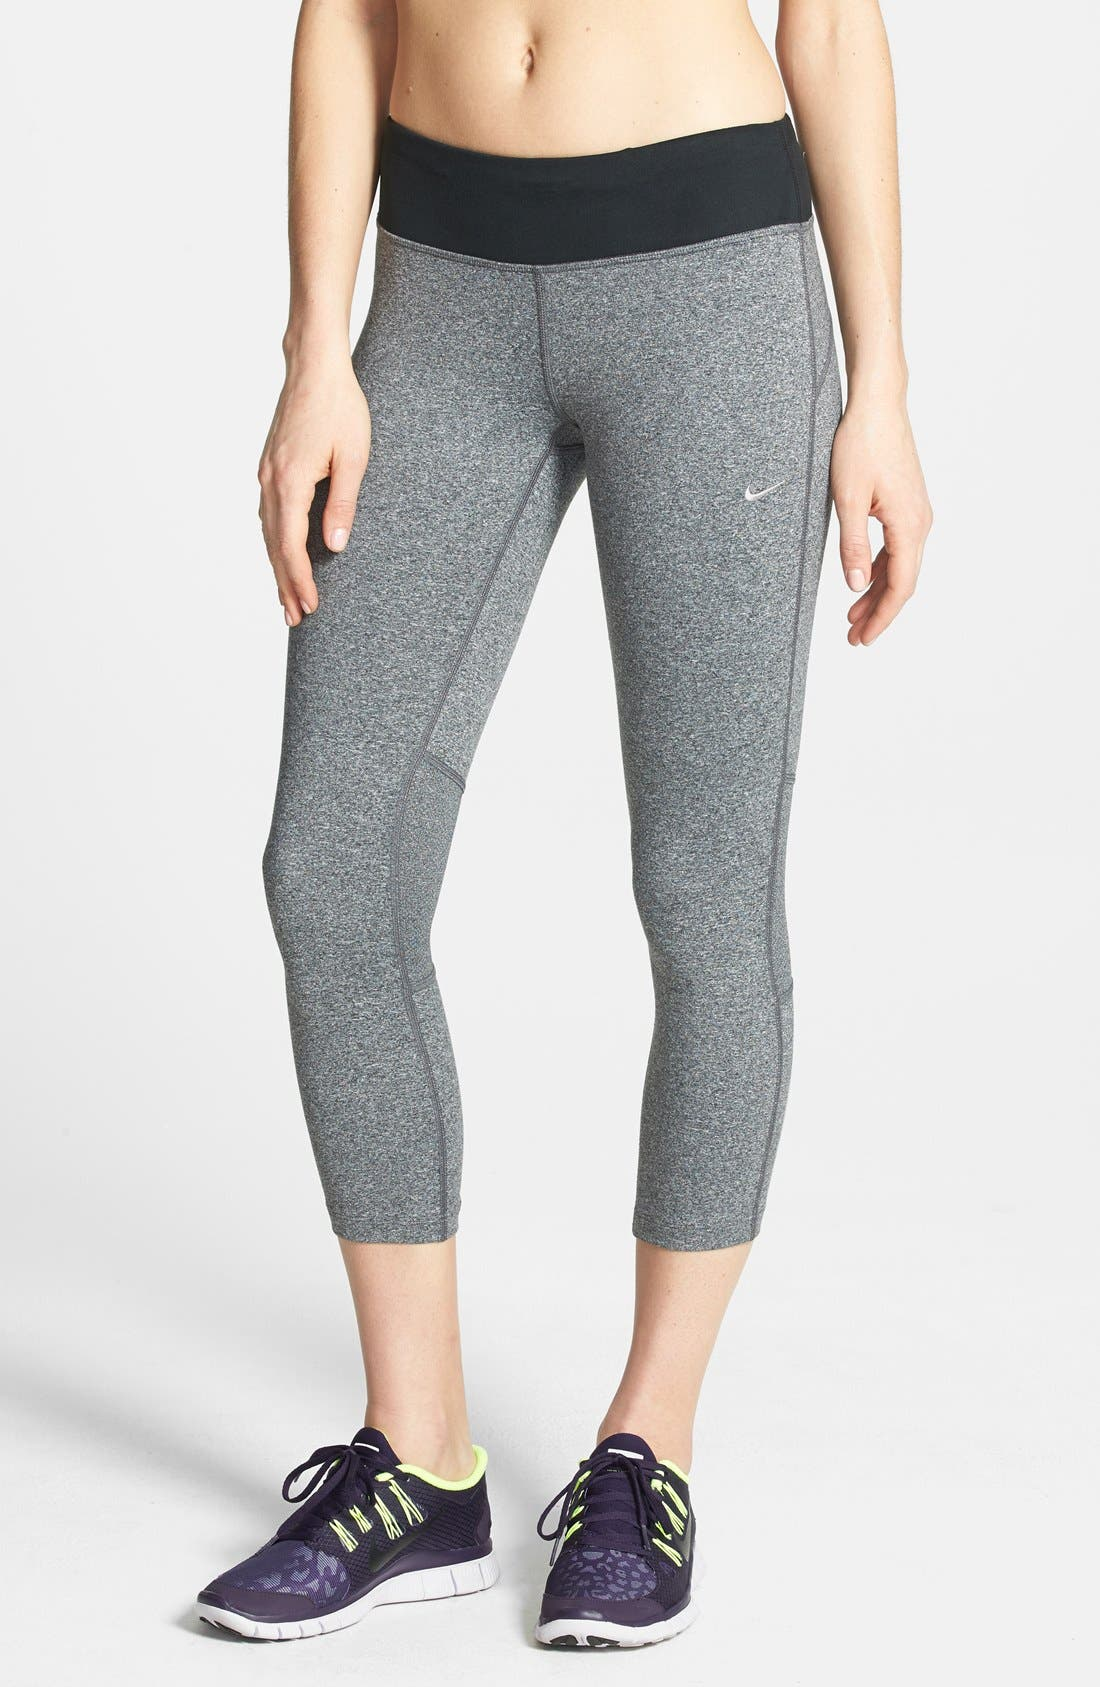 Alternate Image 1 Selected - Nike 'Epic Run' Crop Tights